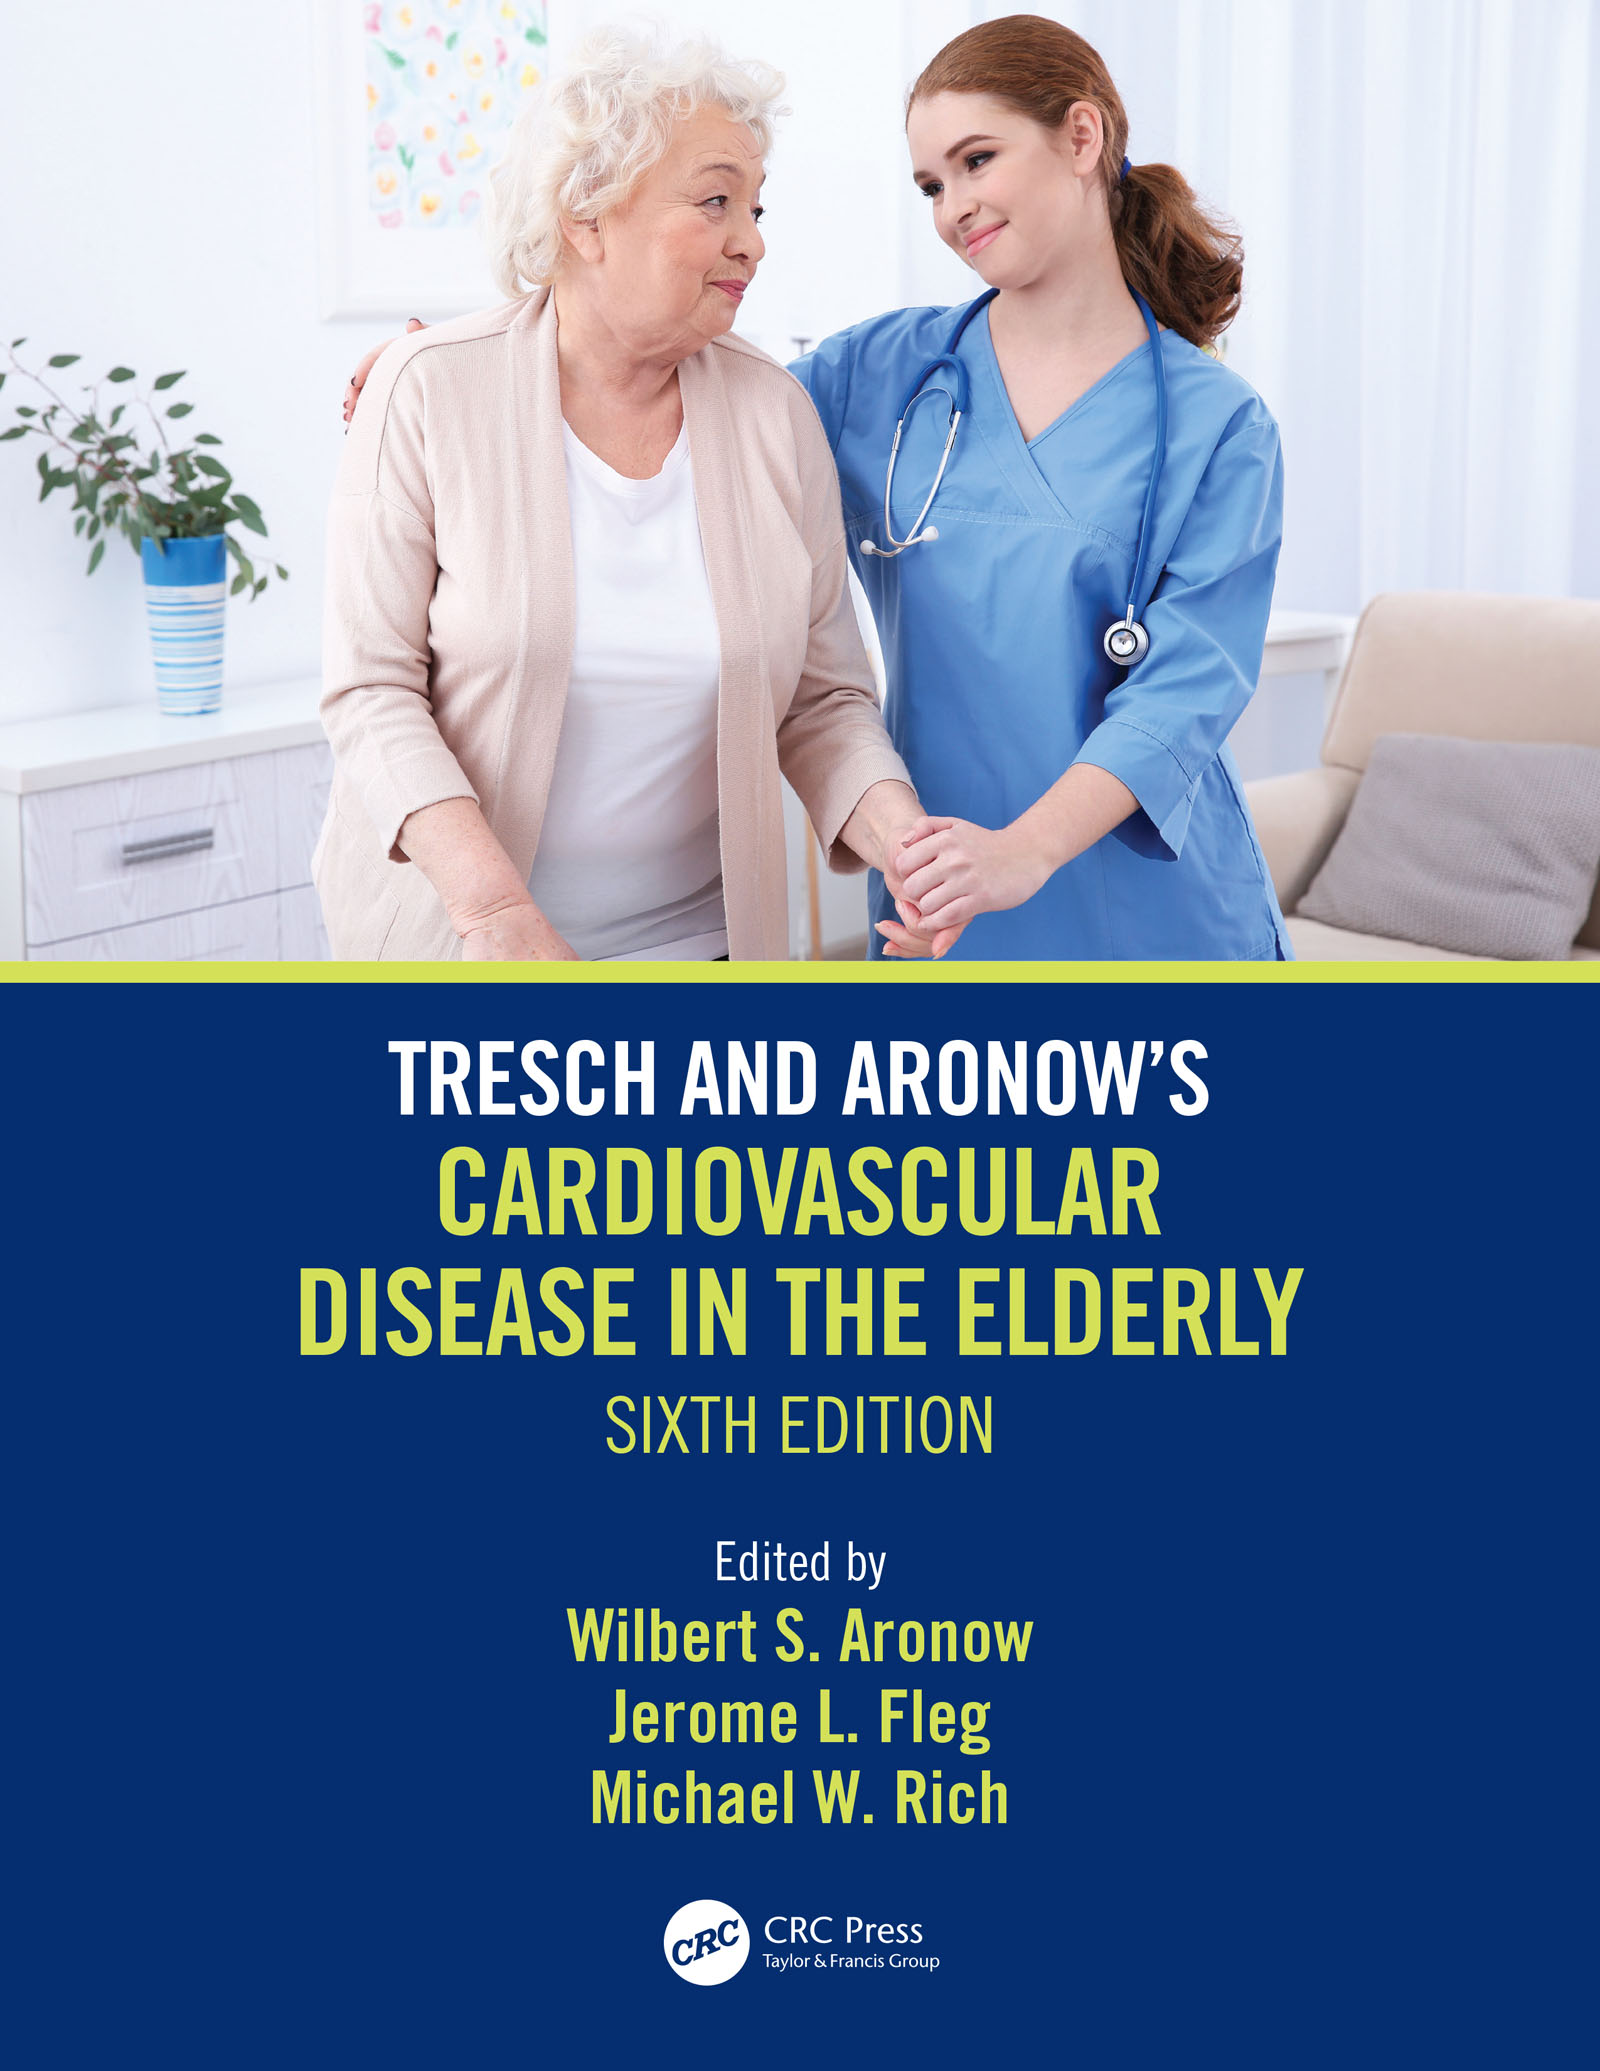 Tresch and Aronow's Cardiovascular Disease in the Elderly